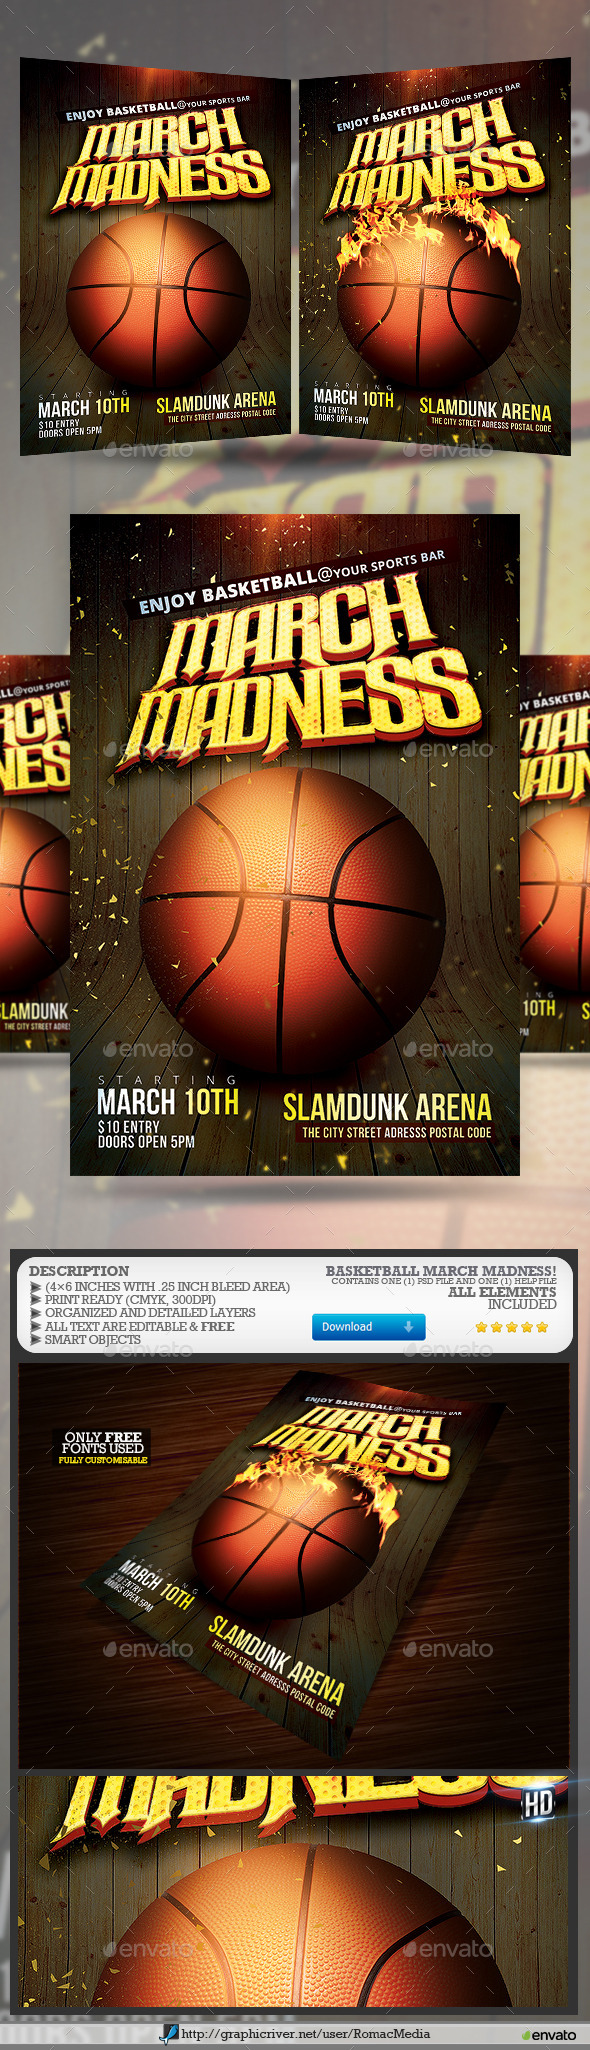 Basketball March Madness Flyer - Sports Events